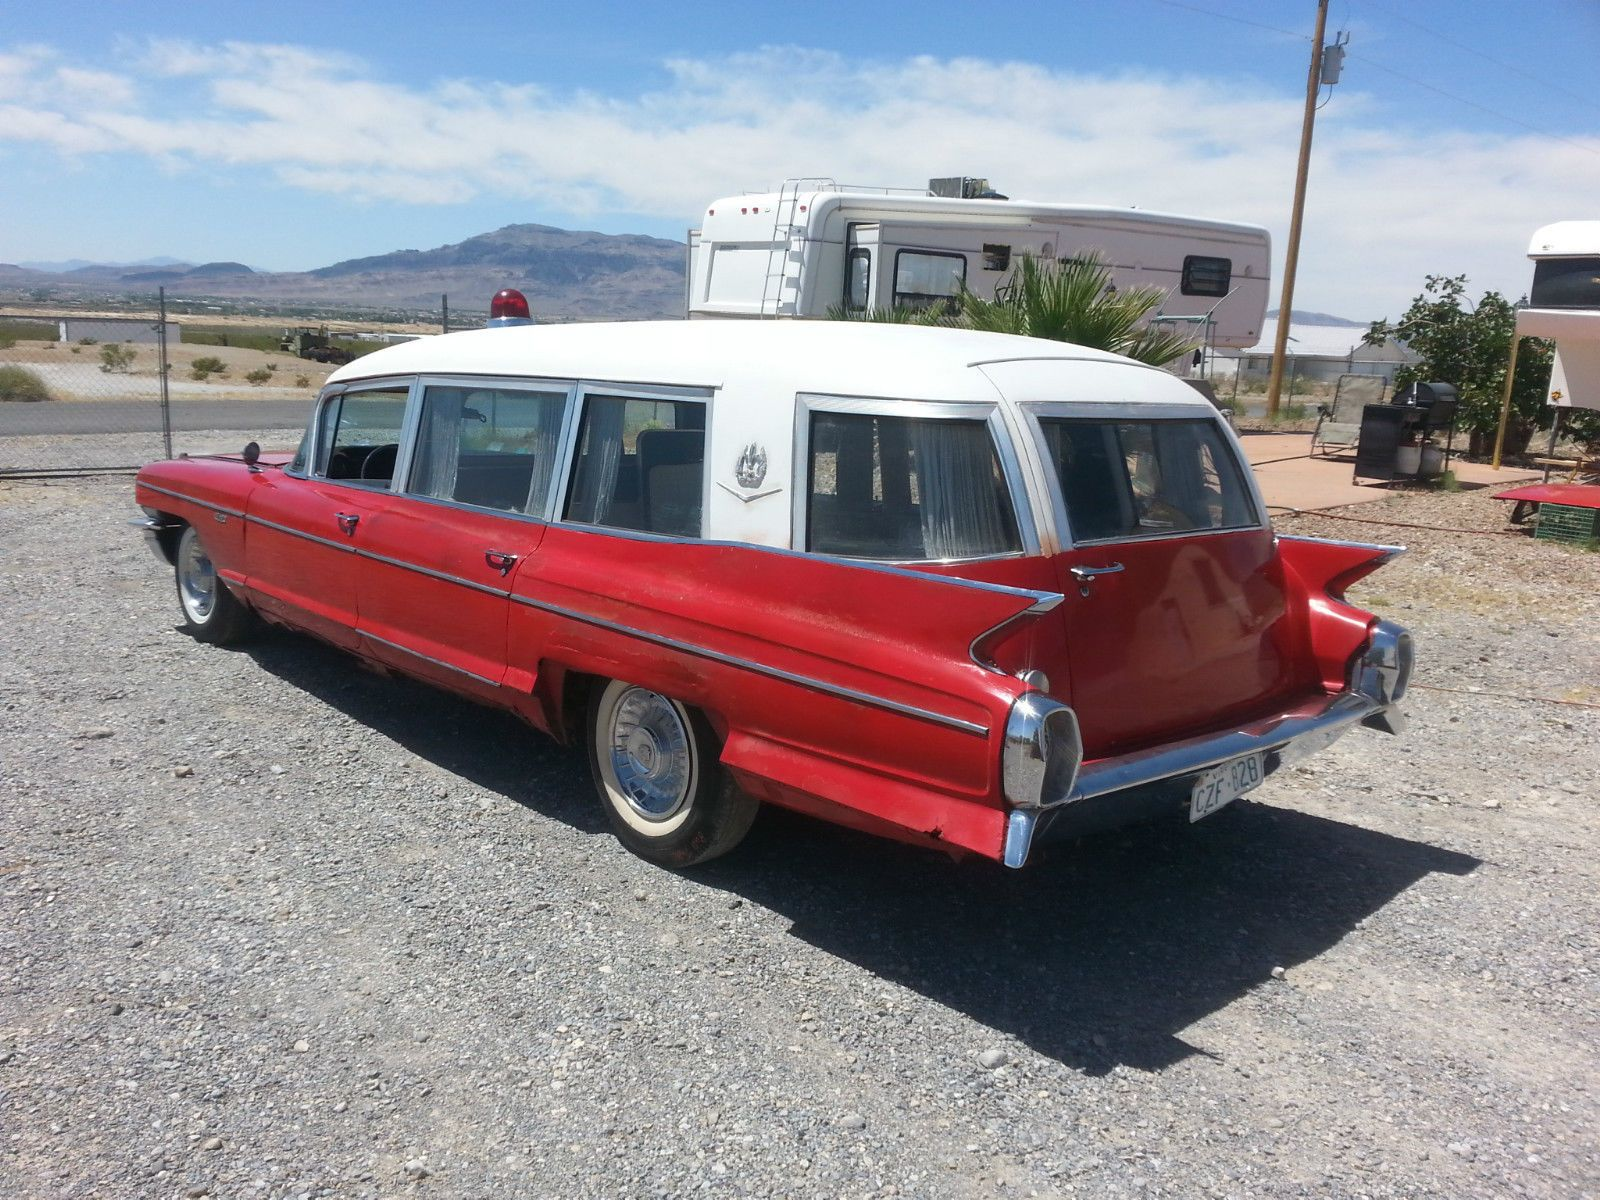 1962 cadillac miller meteor ambulance hearse combo for sale